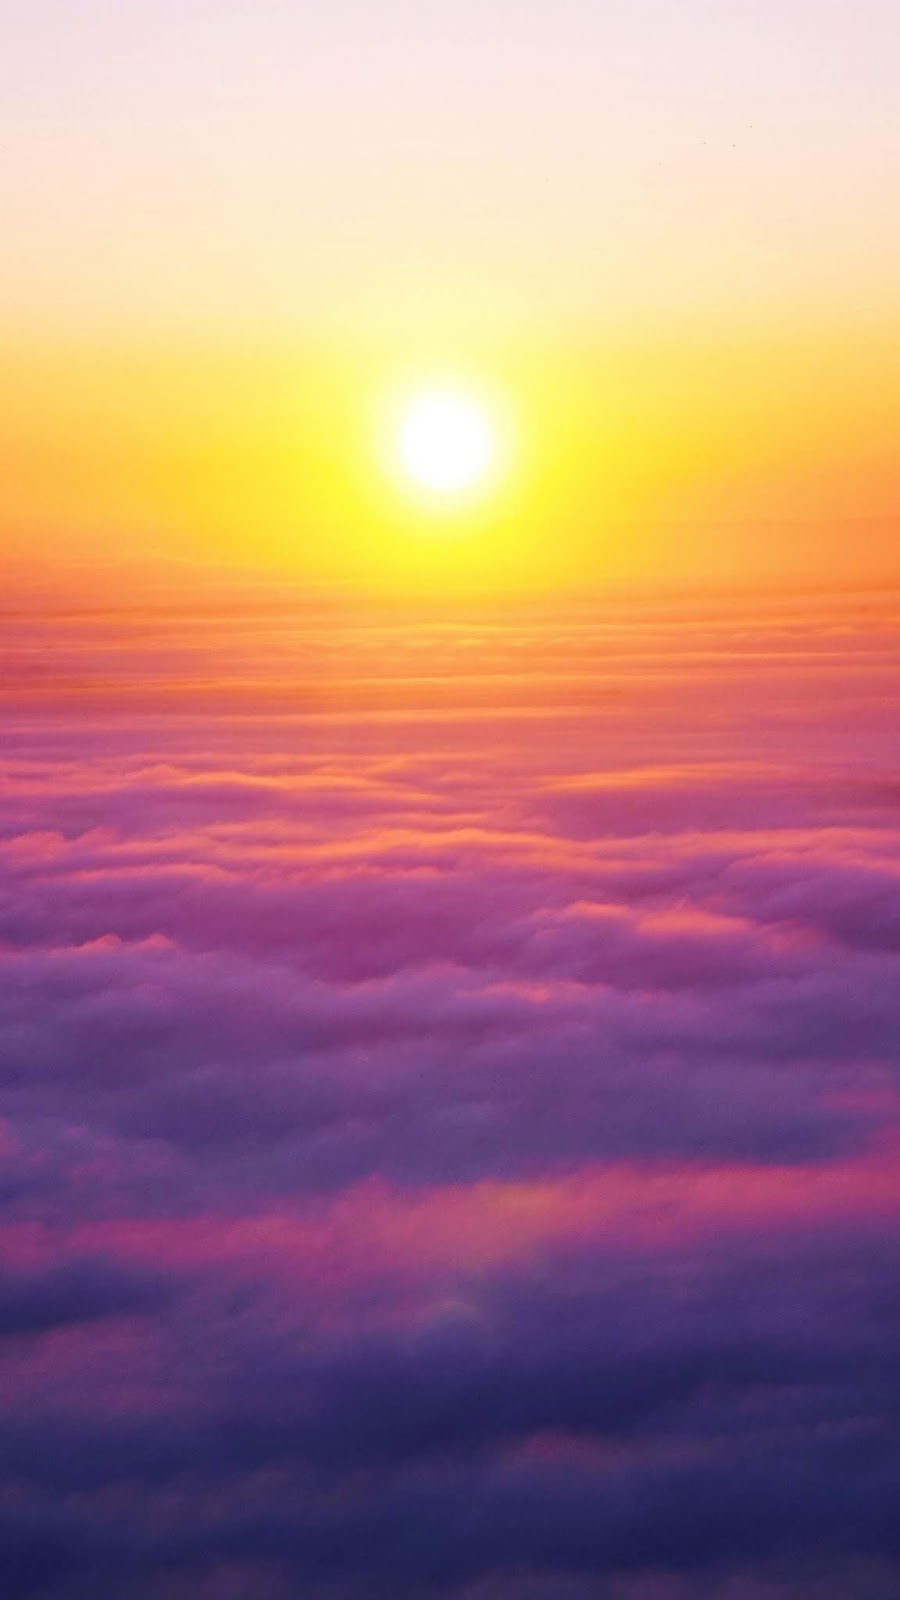 Sunrise in the sky by Toby Hoos